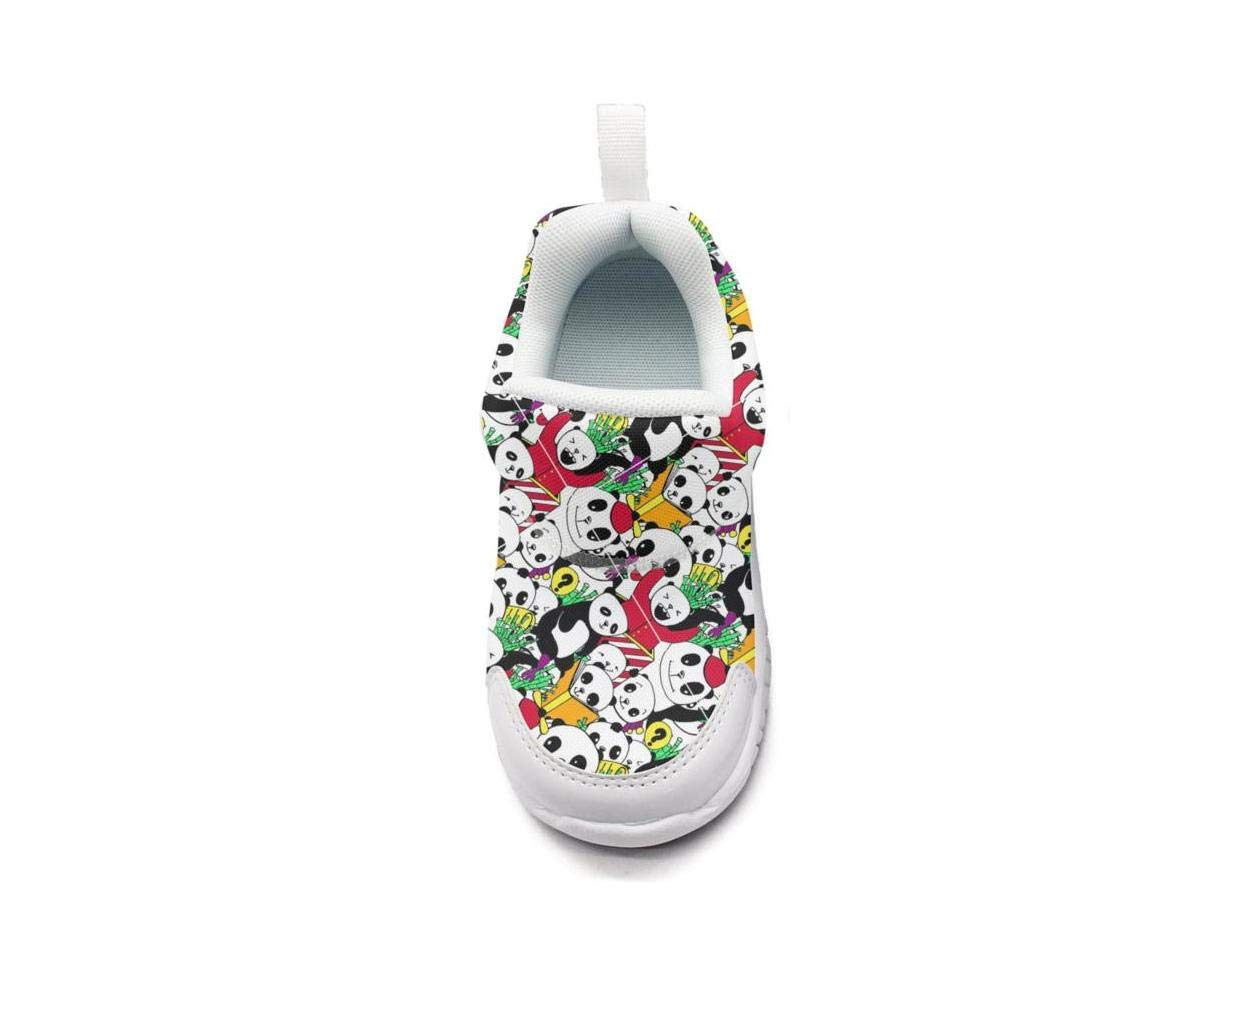 ONEYUAN Children Panda Bear Party Kid Casual Lightweight Sport Shoes Sneakers Walking Athletic Shoes